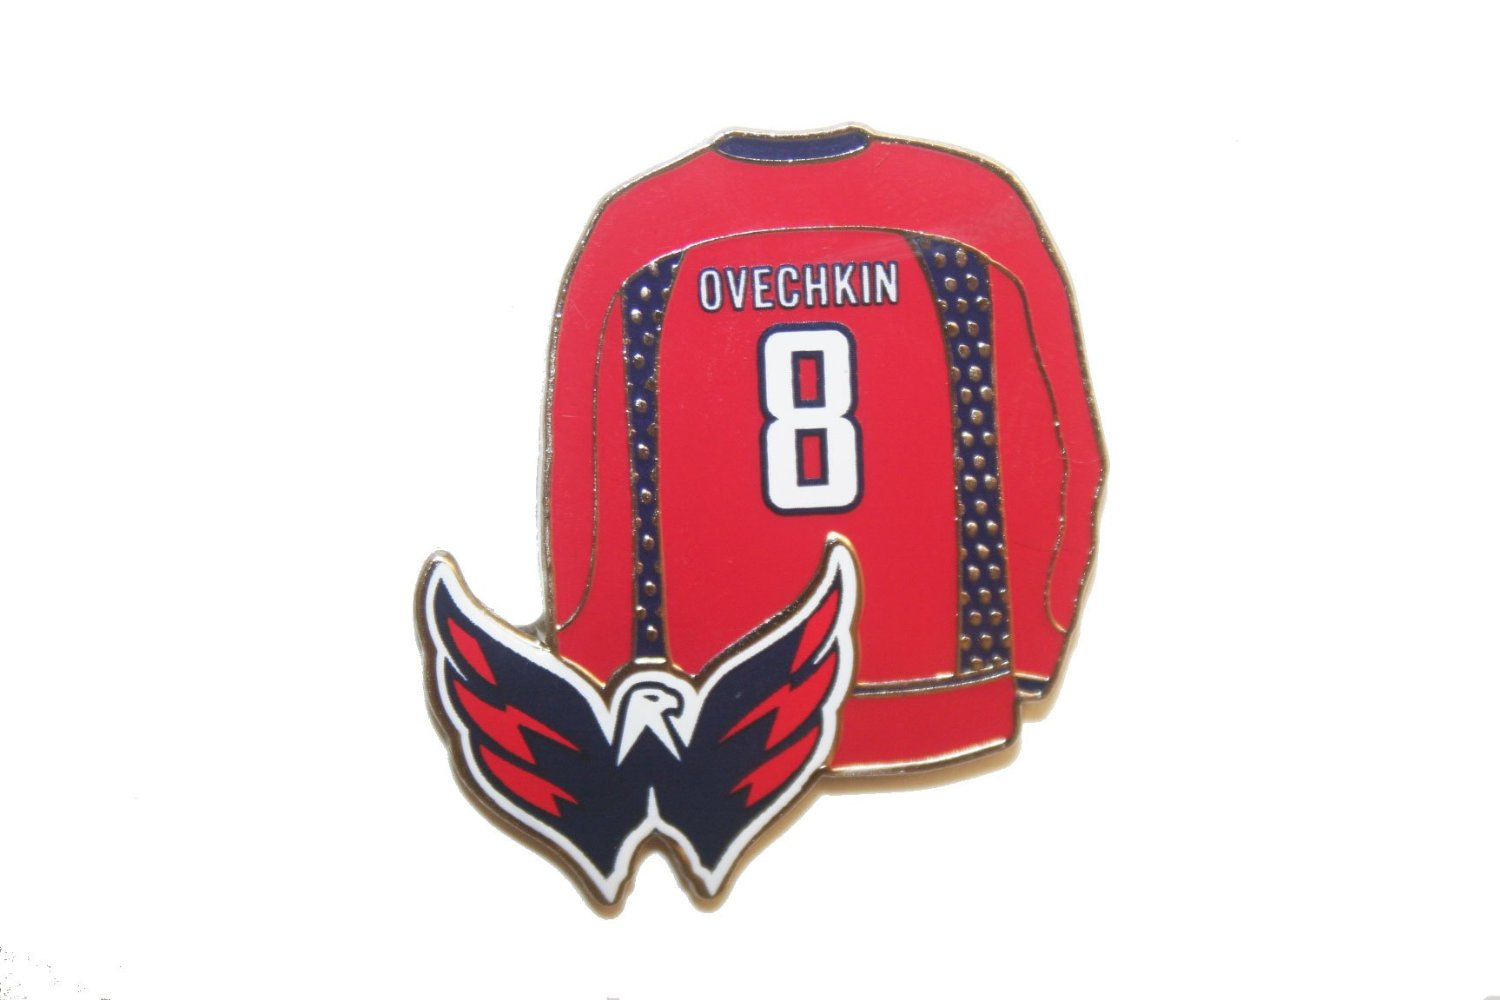 638a159d9 Alexander Ovechkin #8 Washington Capitals Red Jersey Home .. NHL Hockey  Licenced Logo .